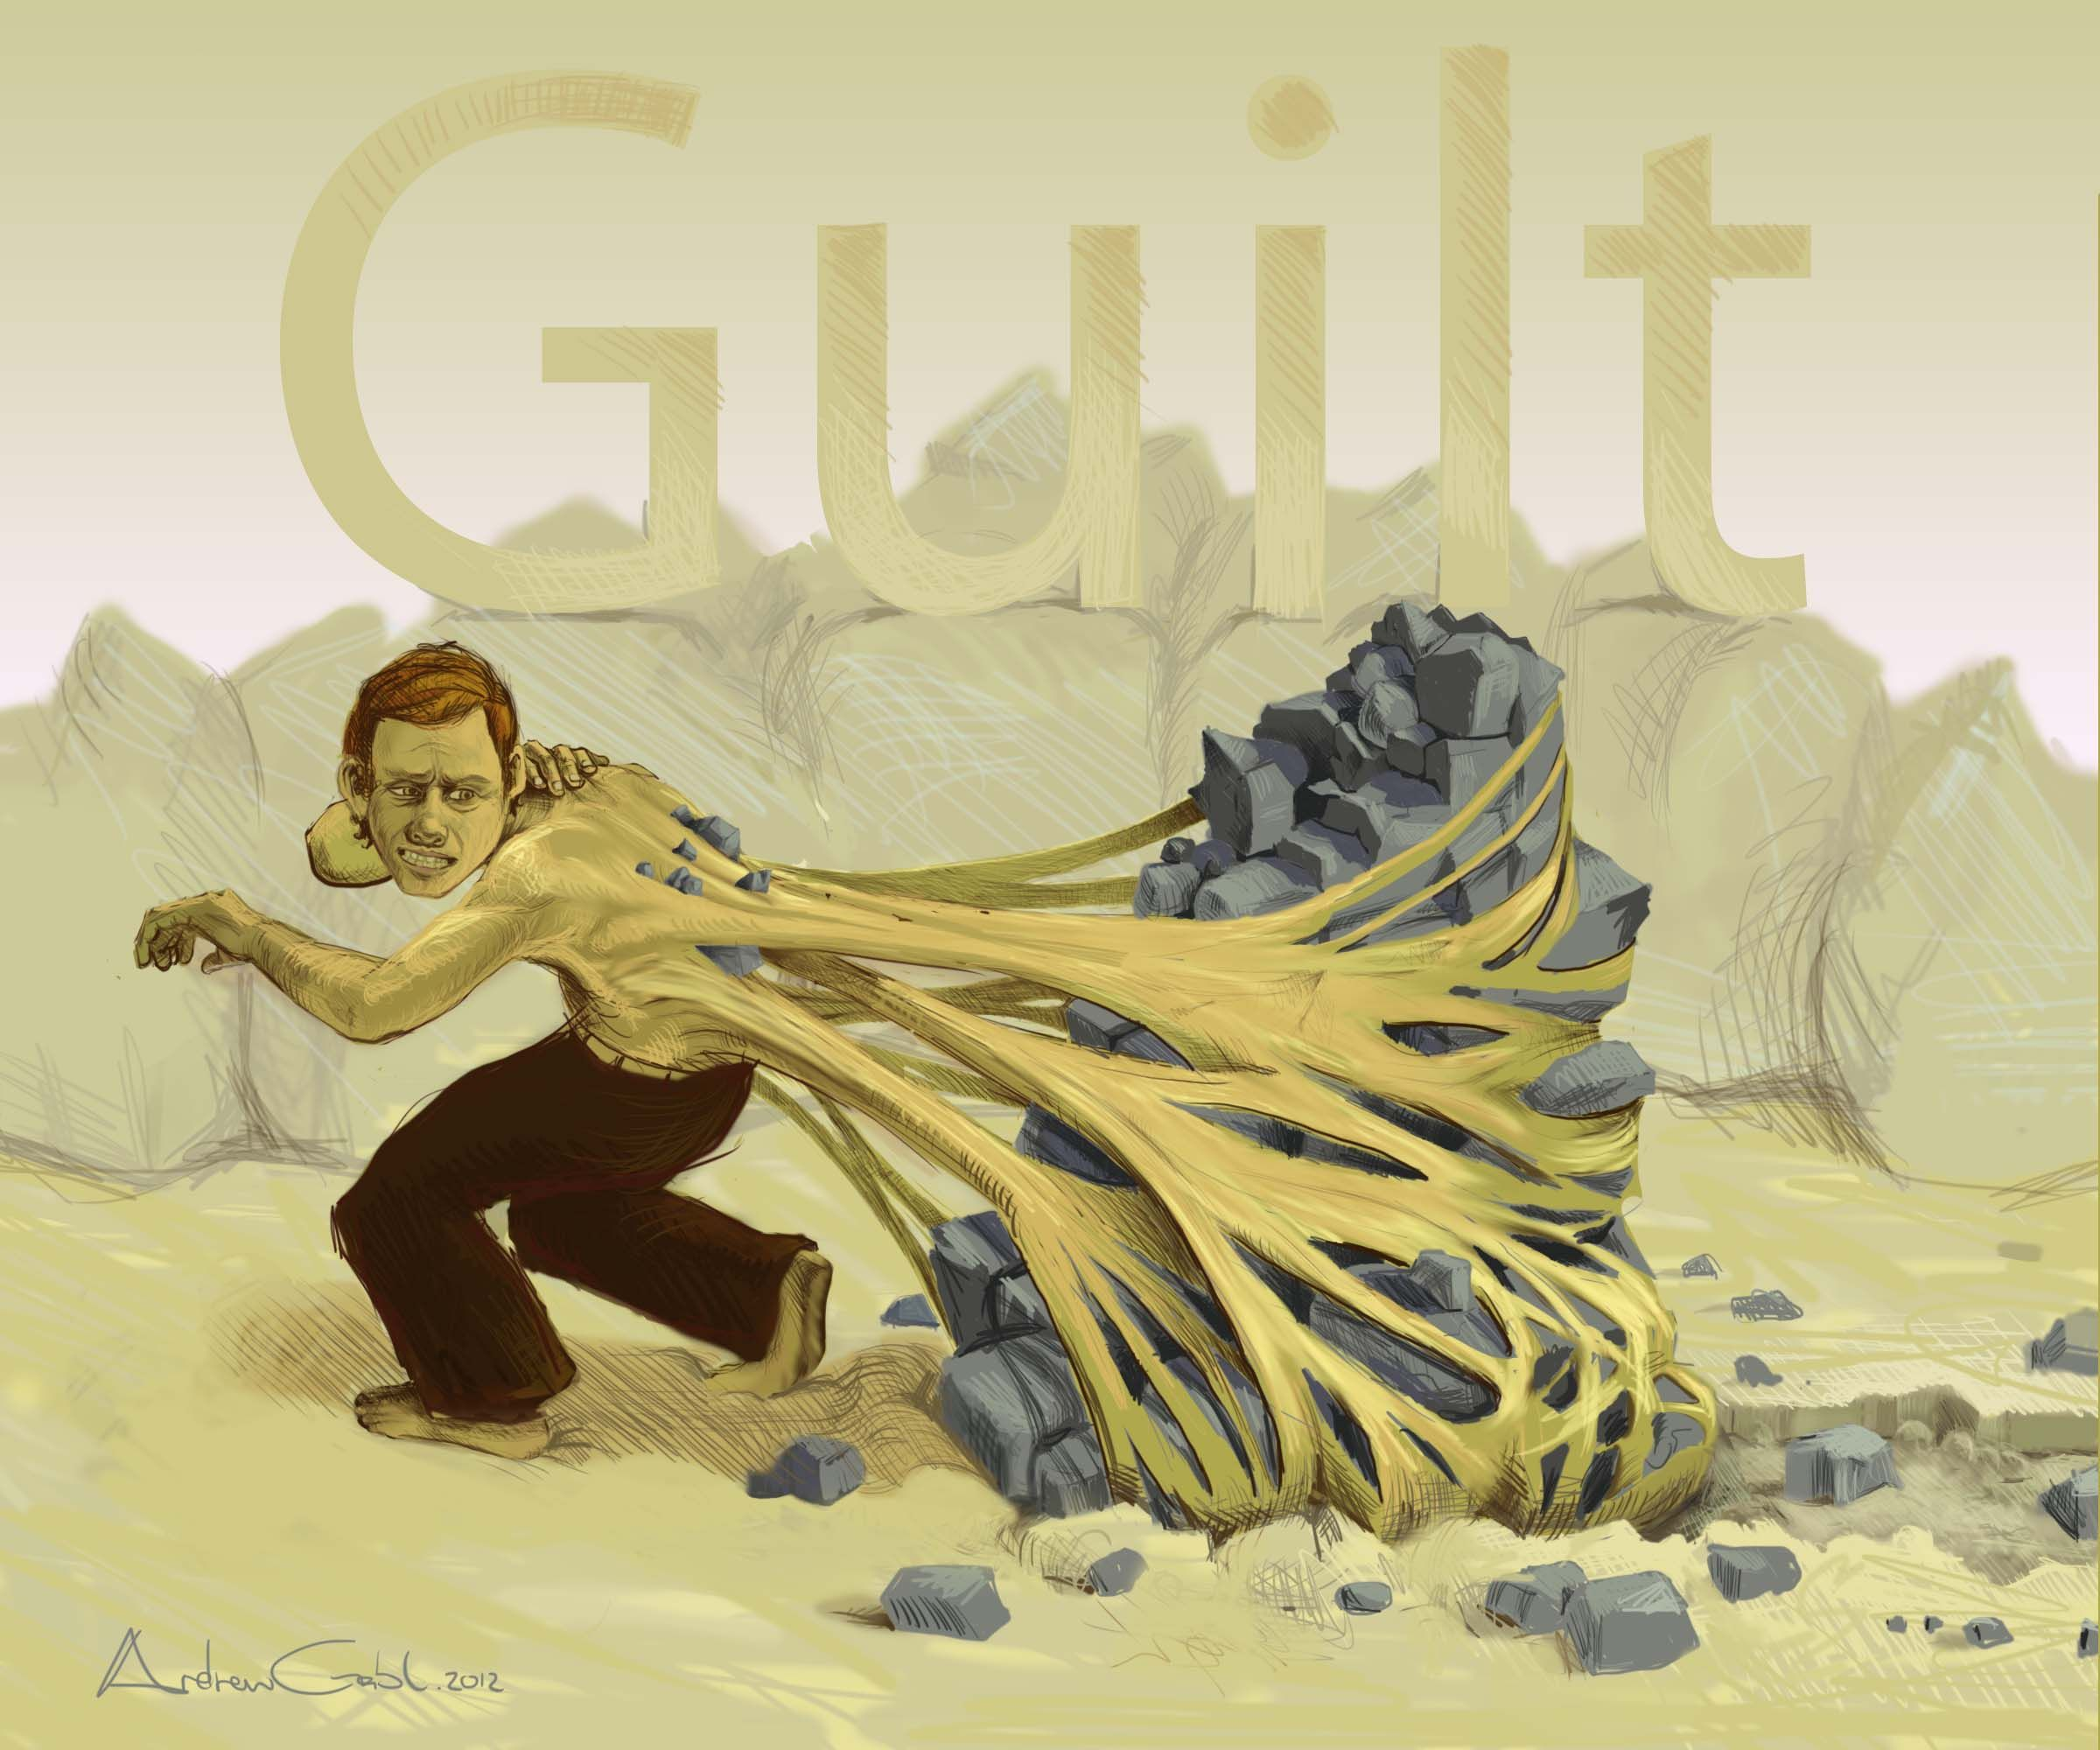 Symbols of guilt choice image symbol and sign ideas symbols of guilt images symbol and sign ideas guilt illustration by andrew gable my art pinterest buycottarizona Gallery